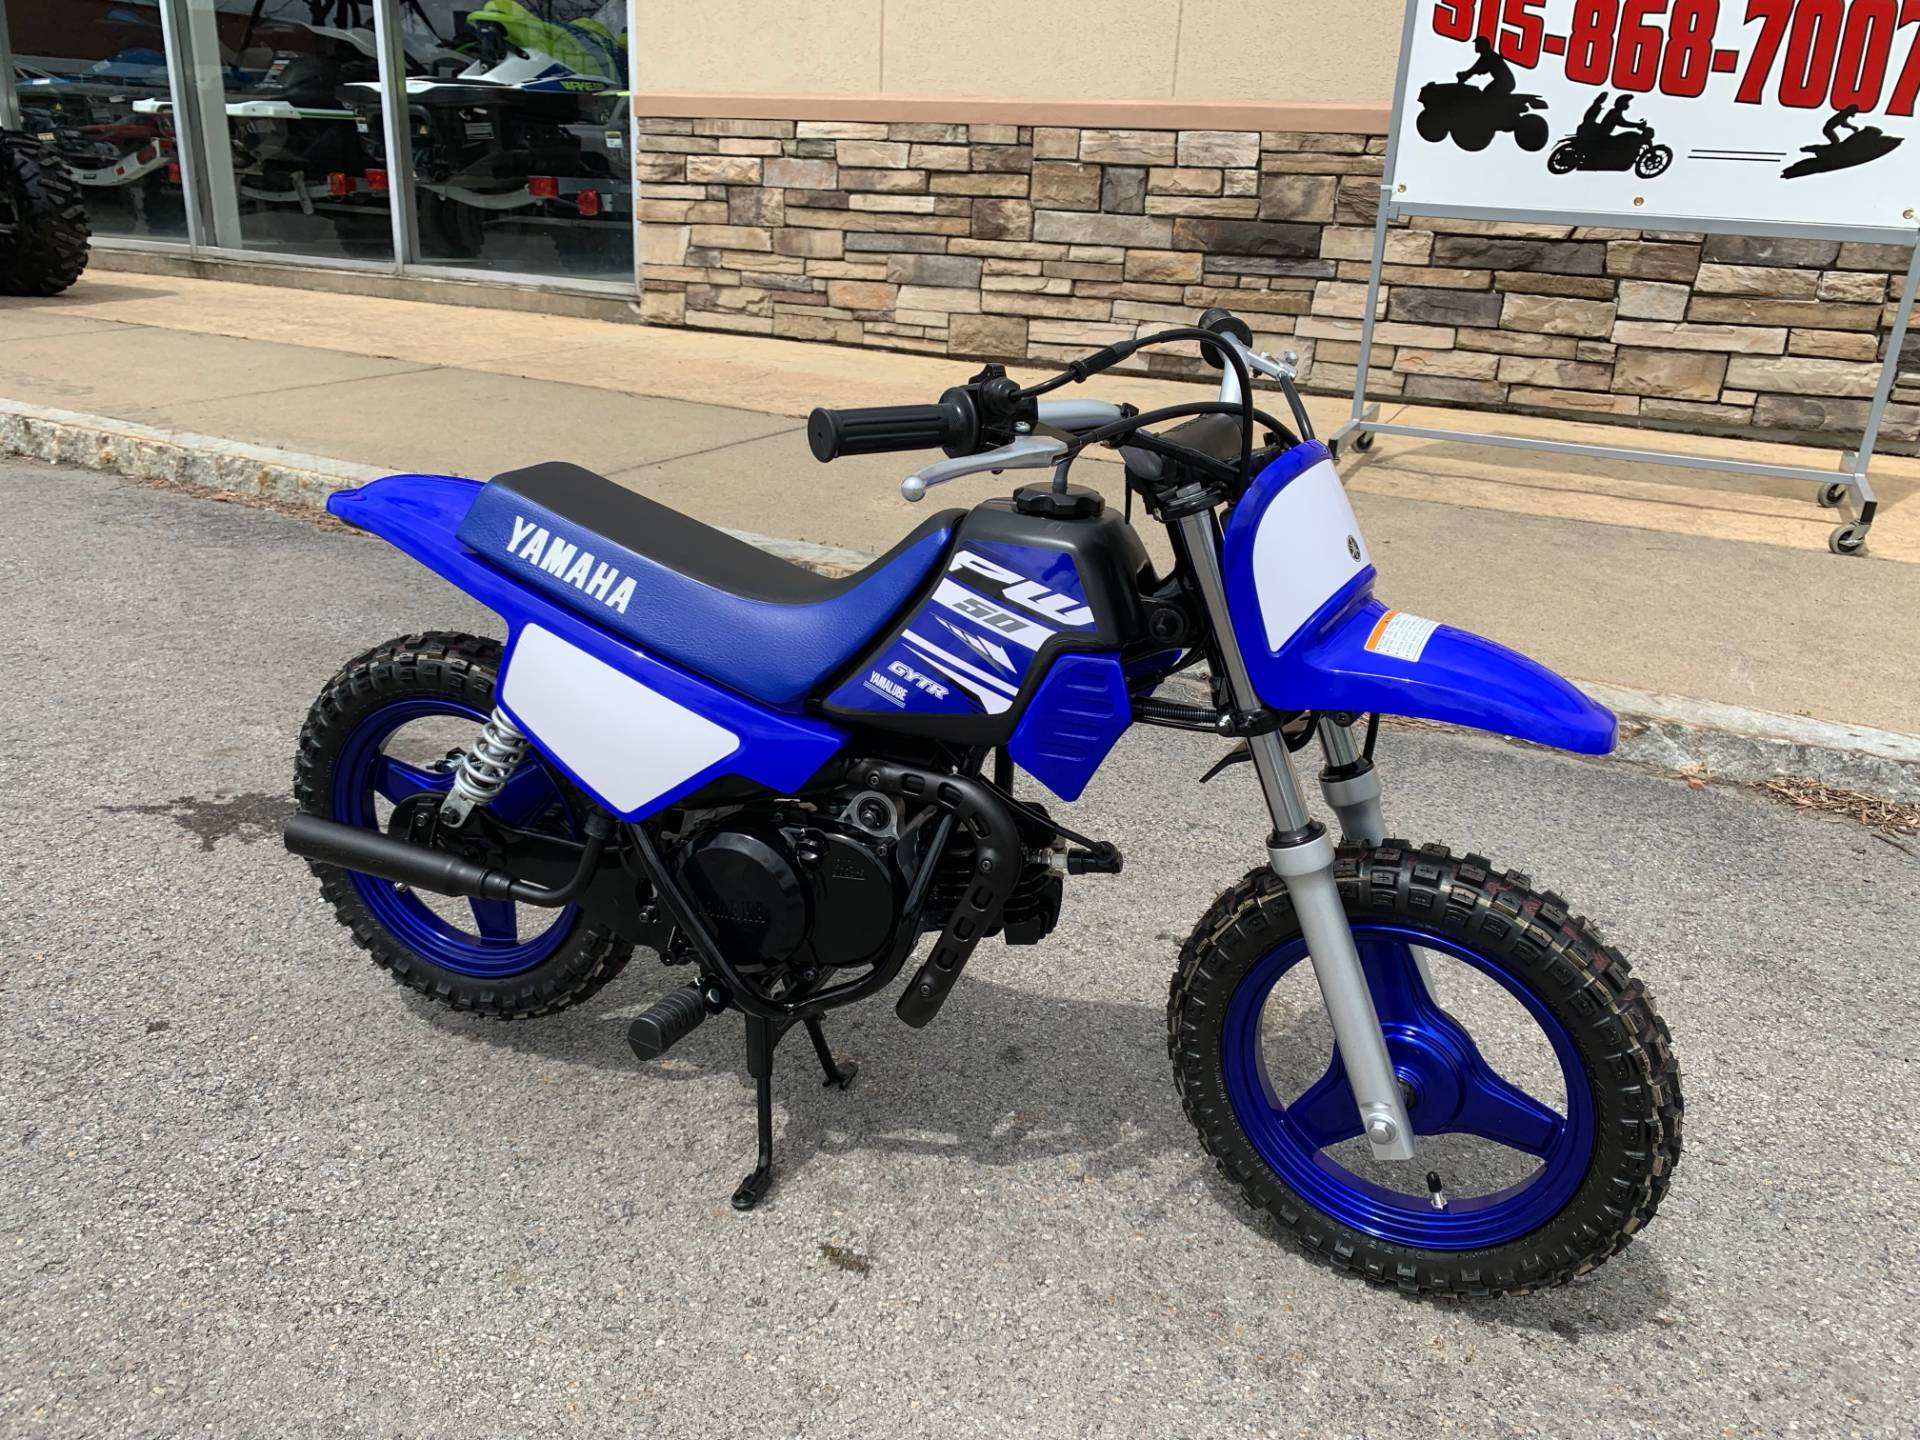 2018 Yamaha PW50 in Herkimer, New York - Photo 3